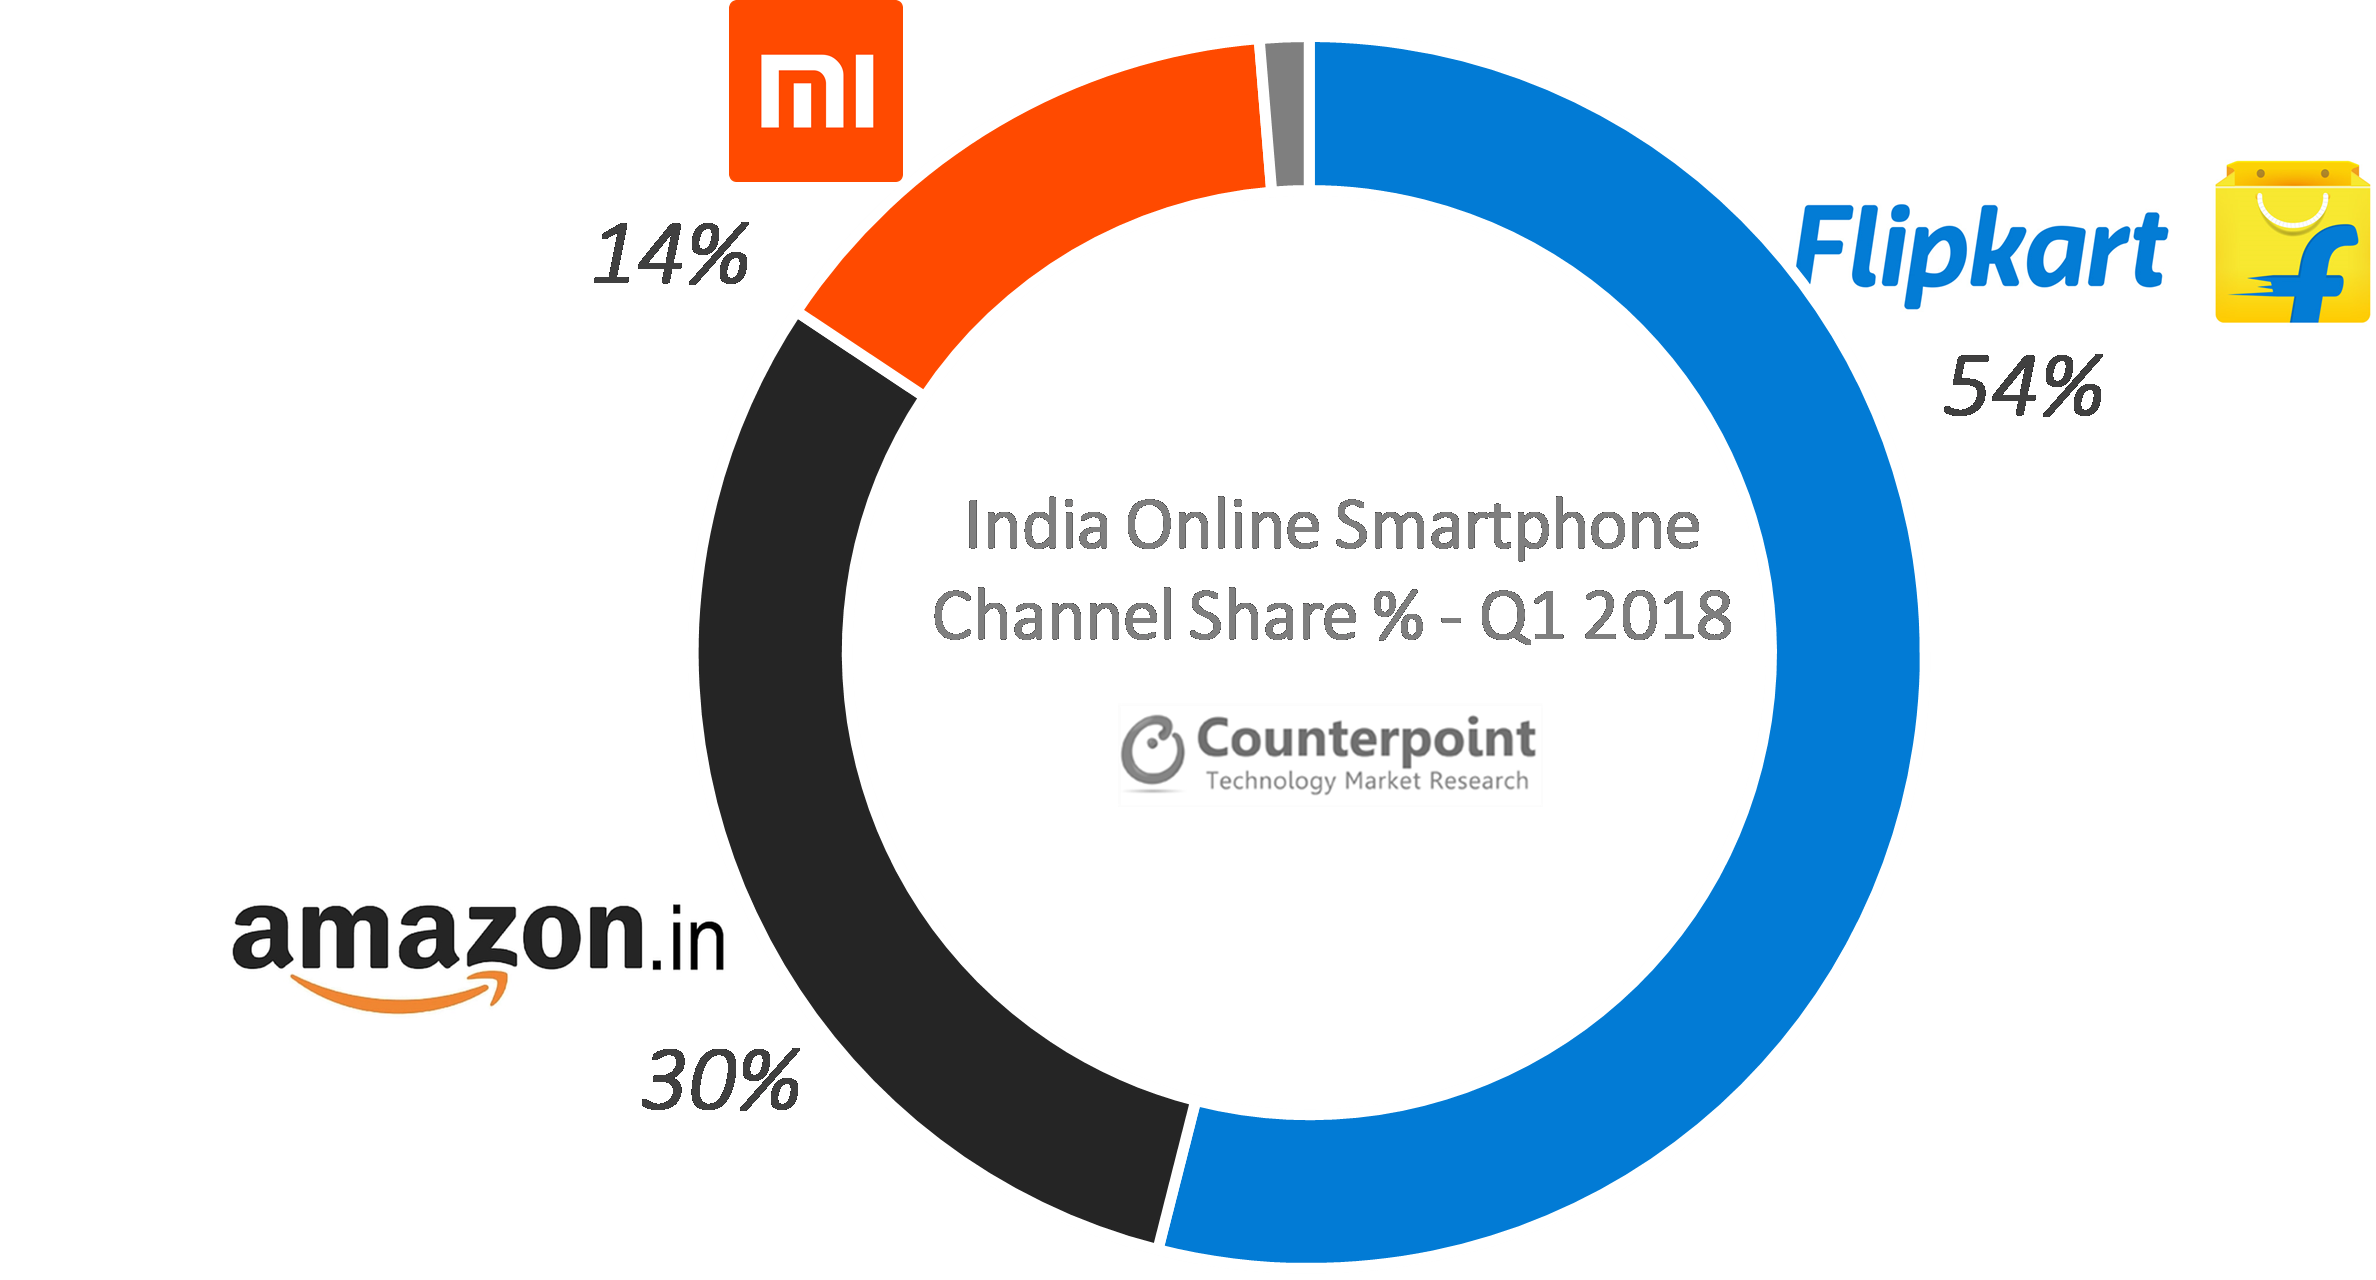 India Online Smartphone Channel Share % Q1 2018